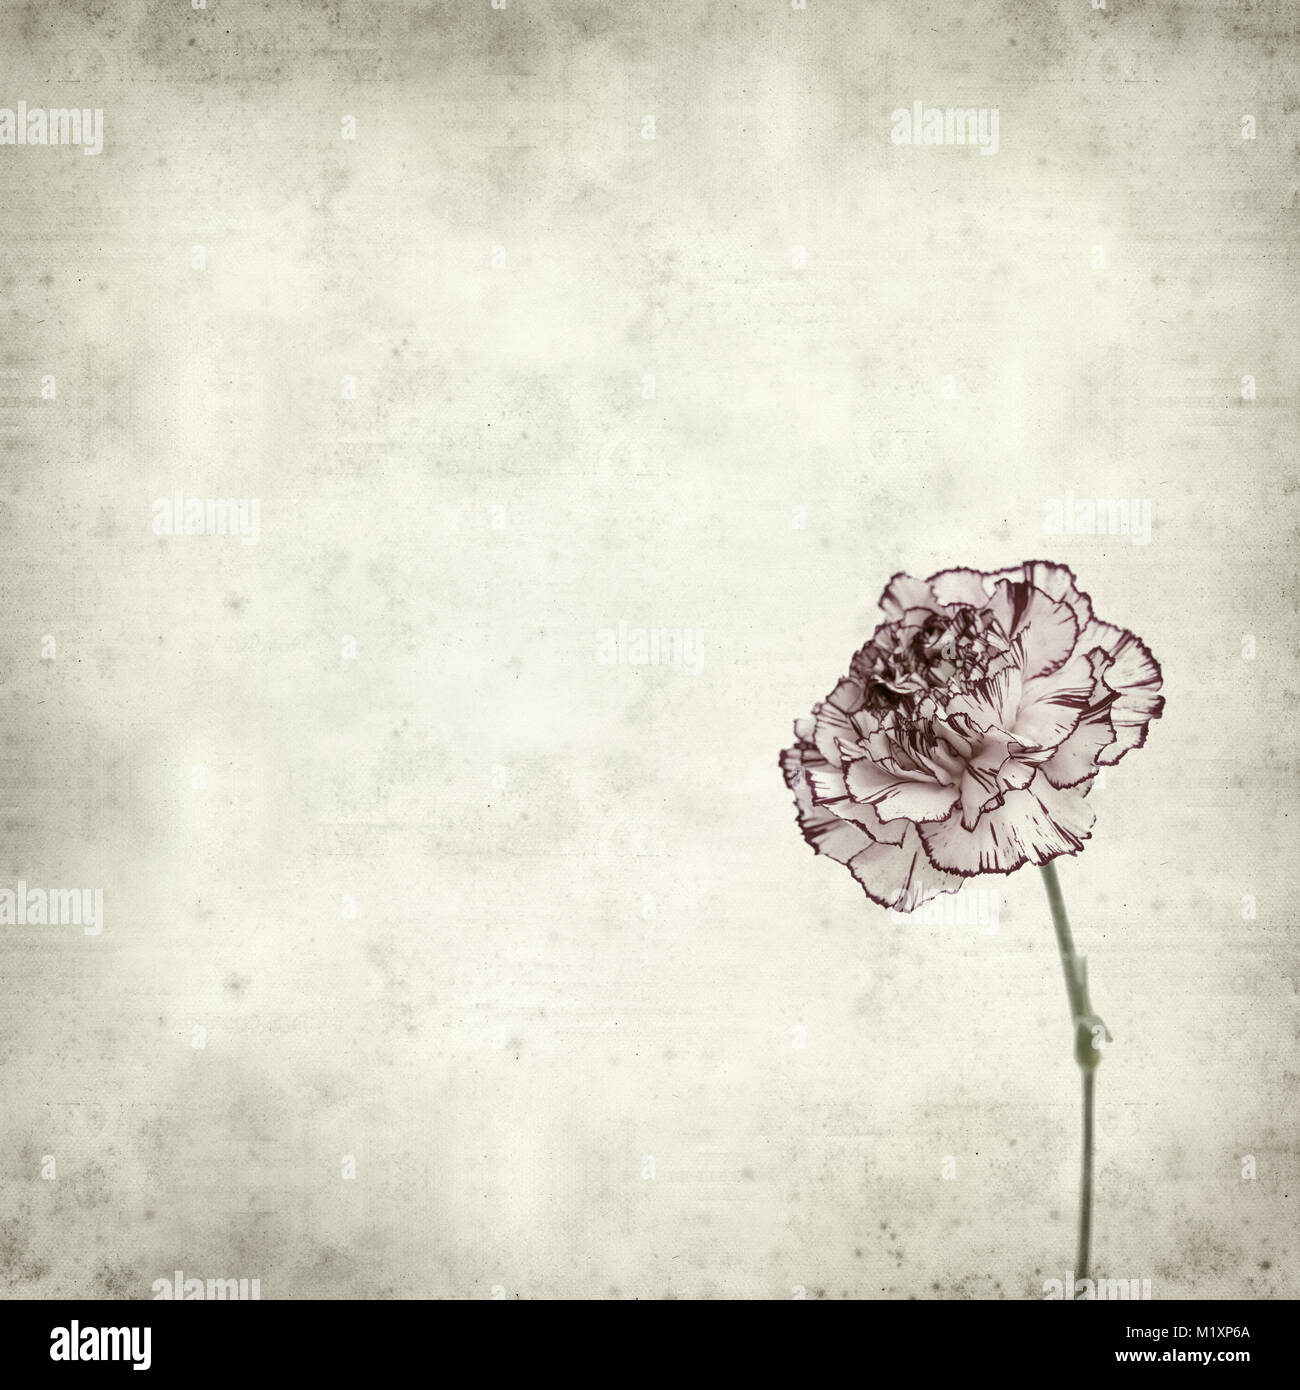 Textured Old Paper Background With Variegated Carnation Flower Stock